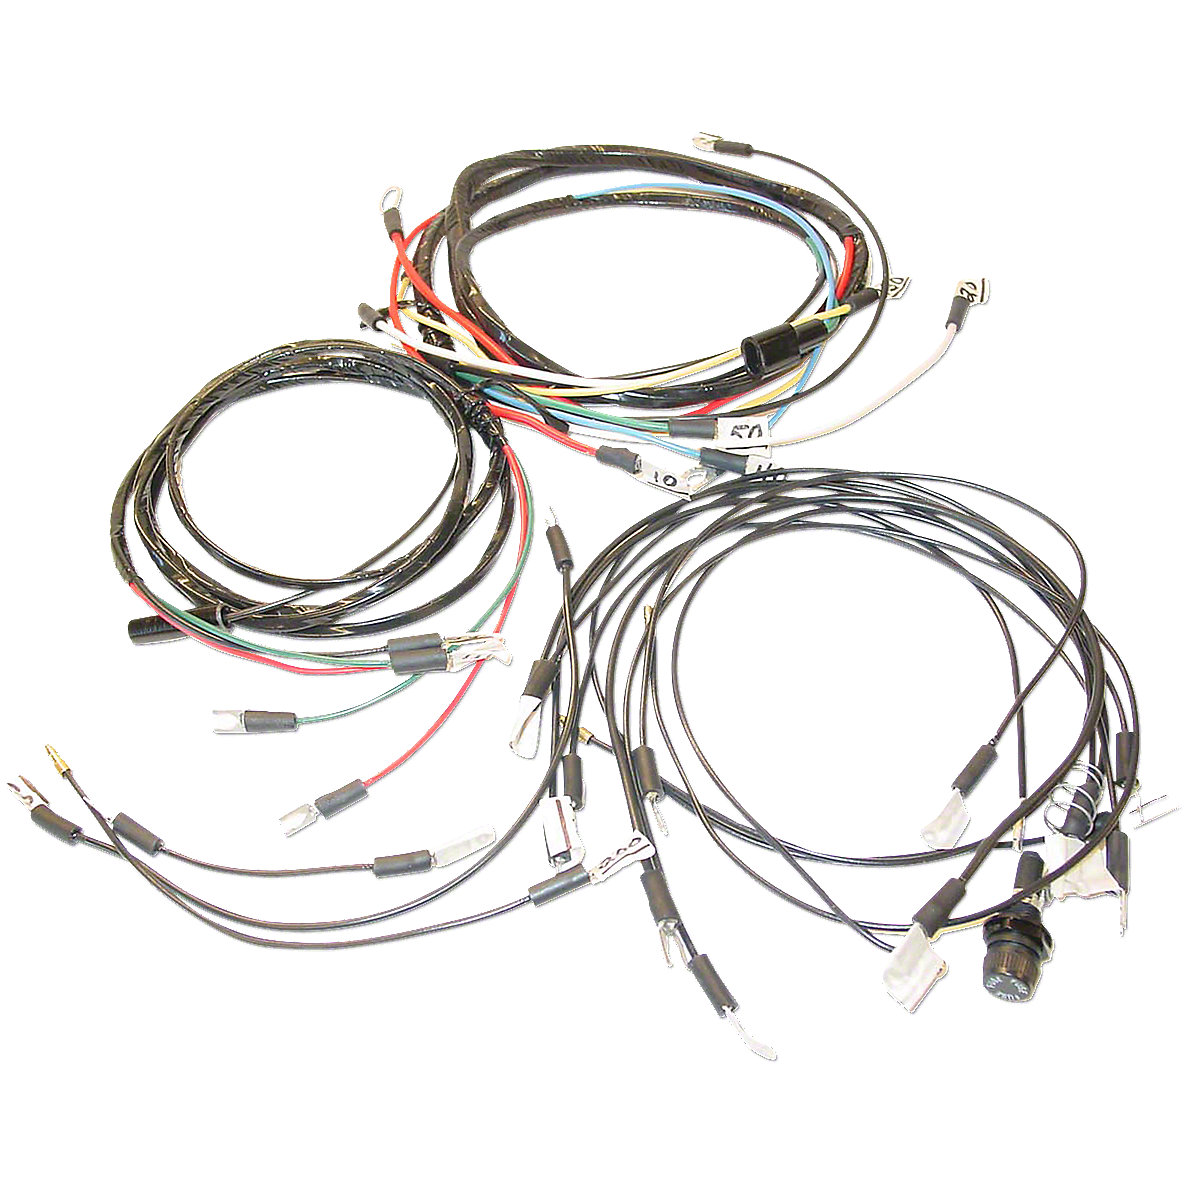 JDS820?$lg$ jds820 wiring harness wiring harness for tractors at panicattacktreatment.co